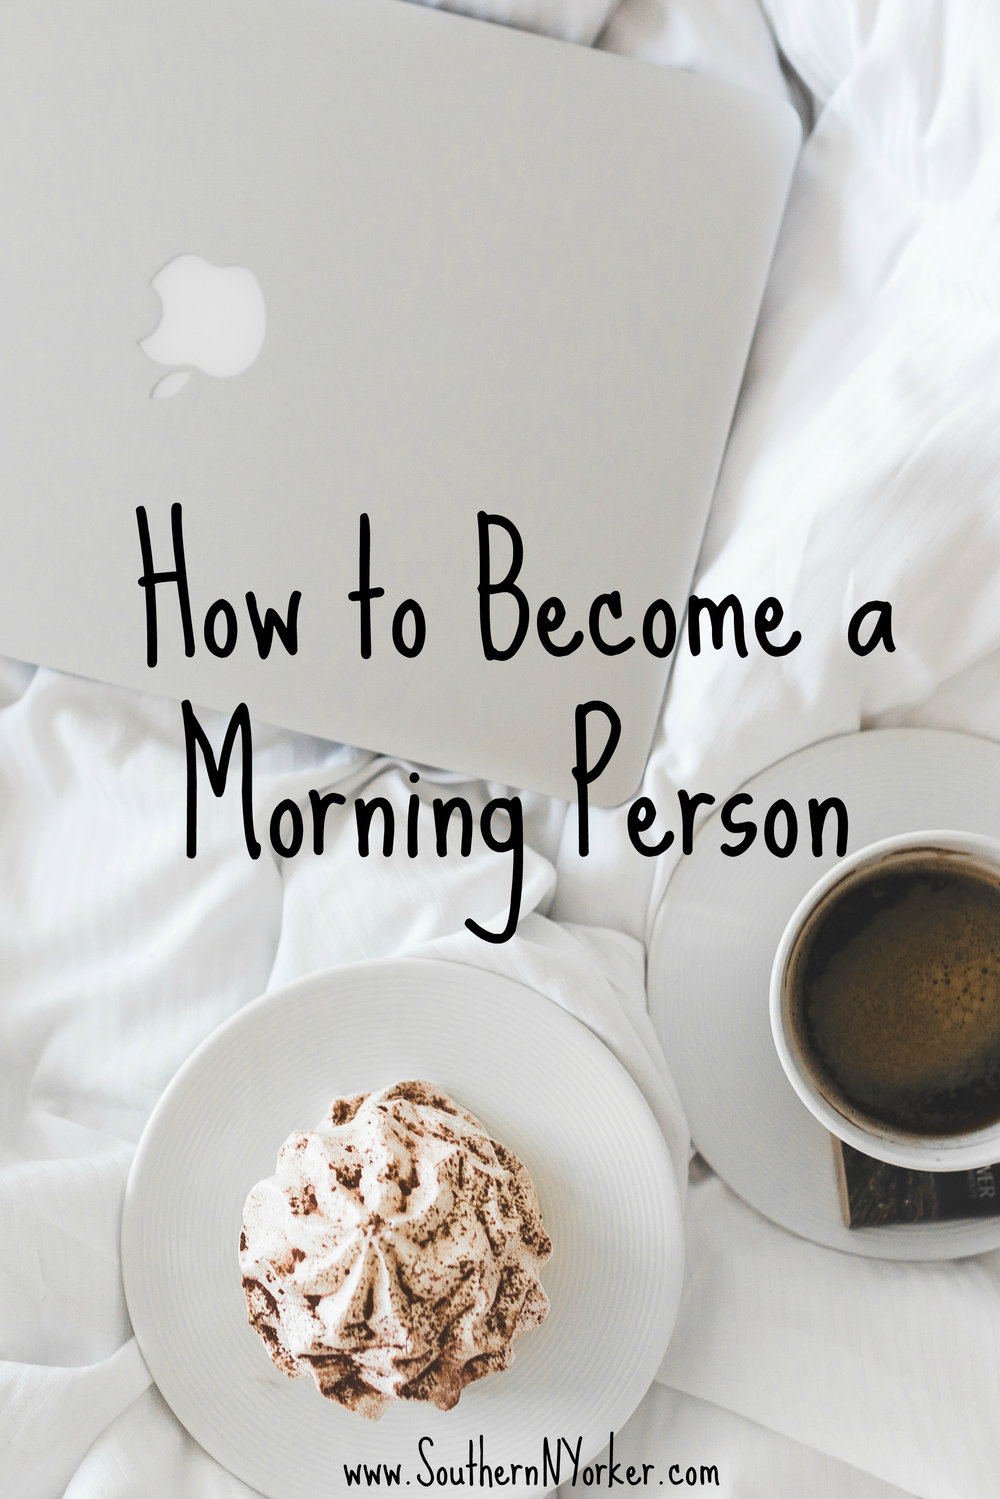 How to Become a Morning Person - Southern New Yorker